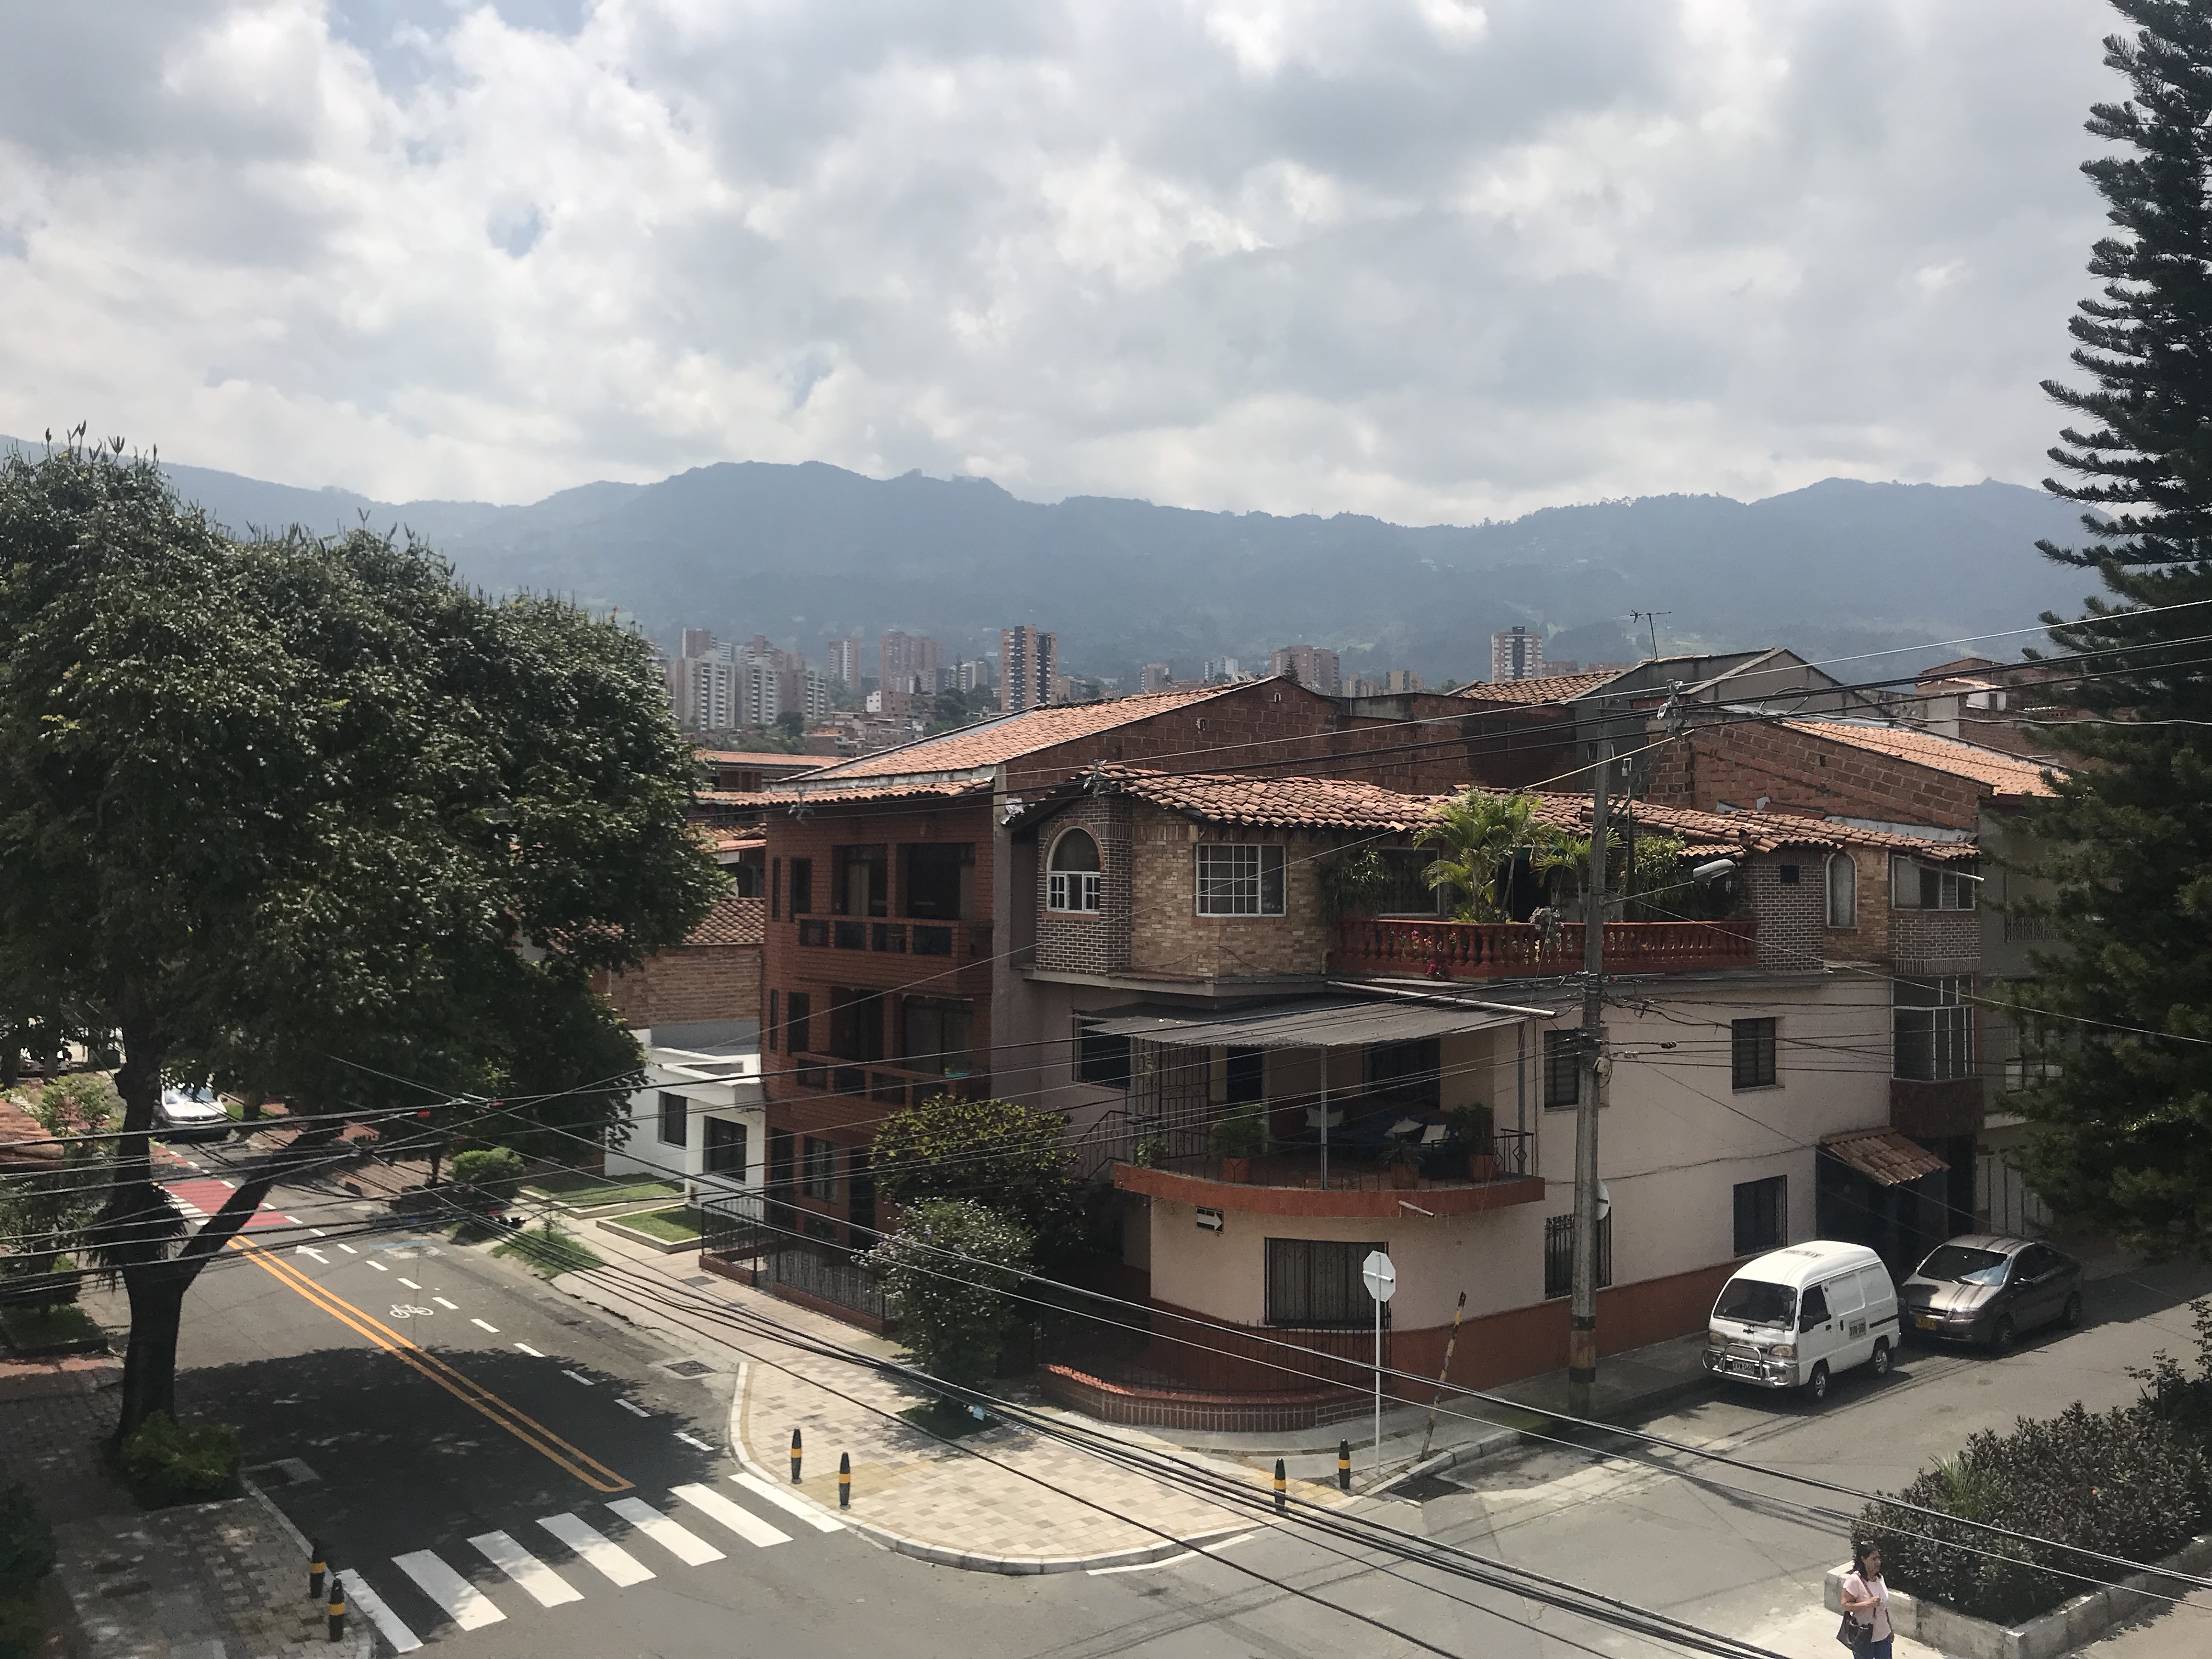 Daytime scene of the hills of Medellin from behind a neighborhood home